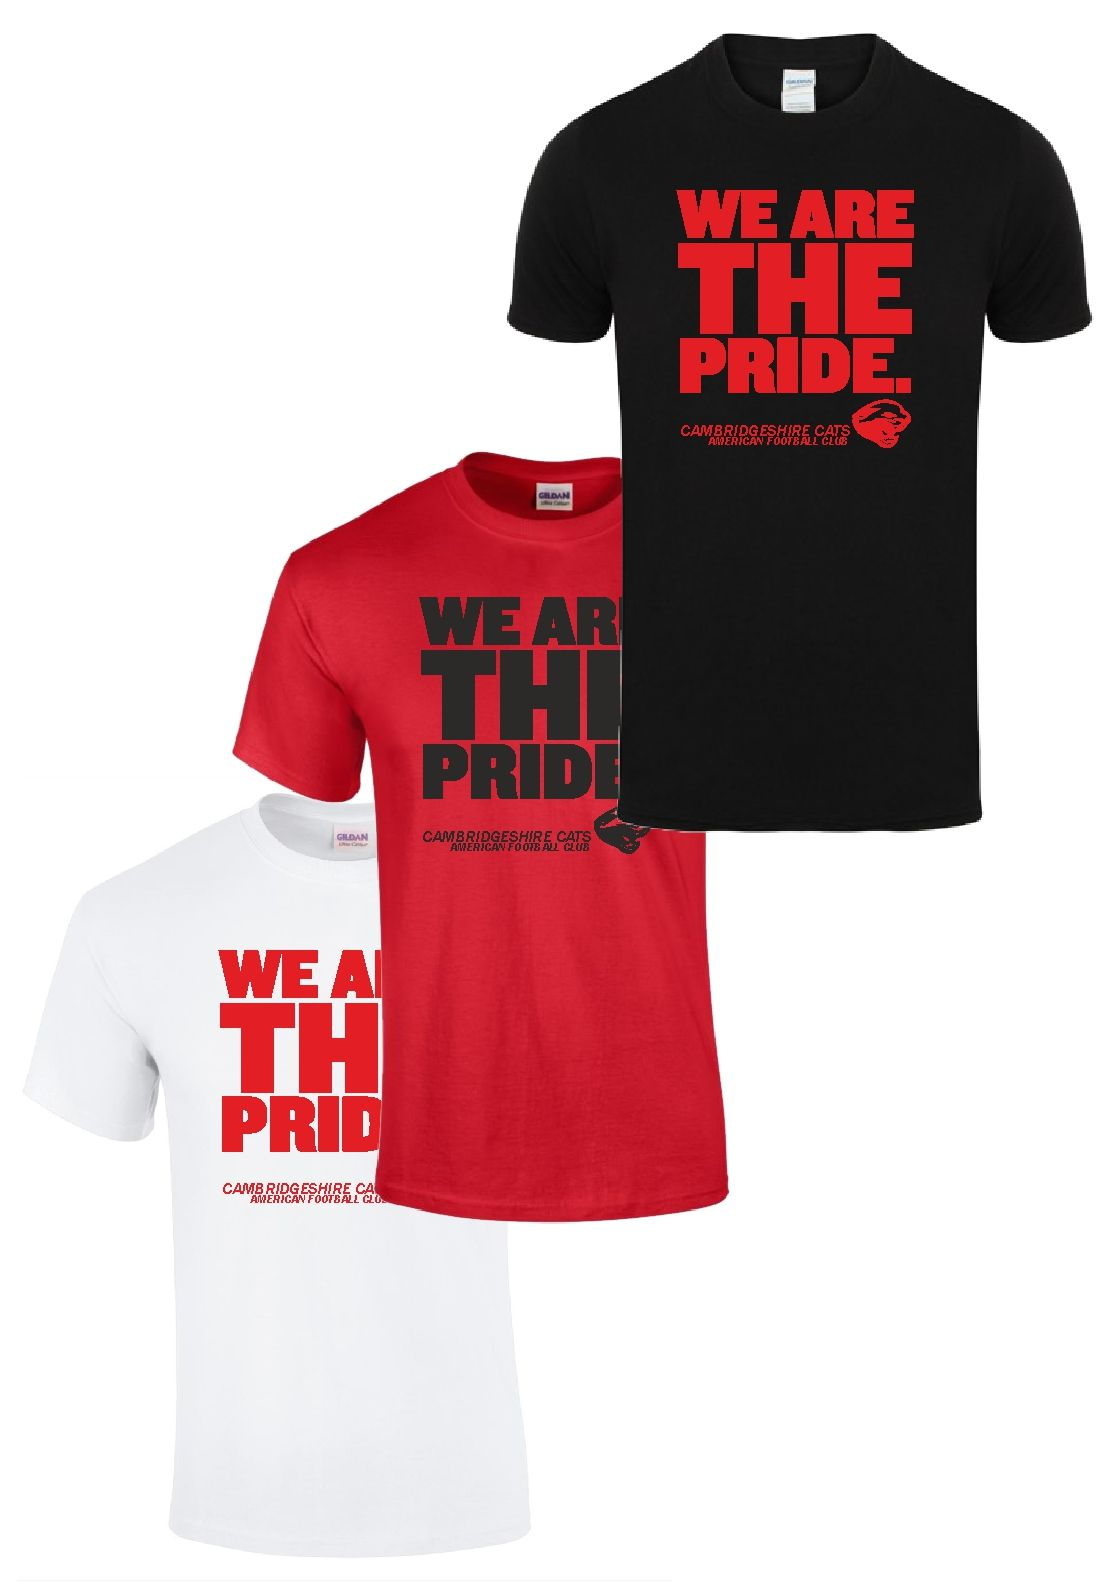 Cats - 'We Are The Pride' Tee